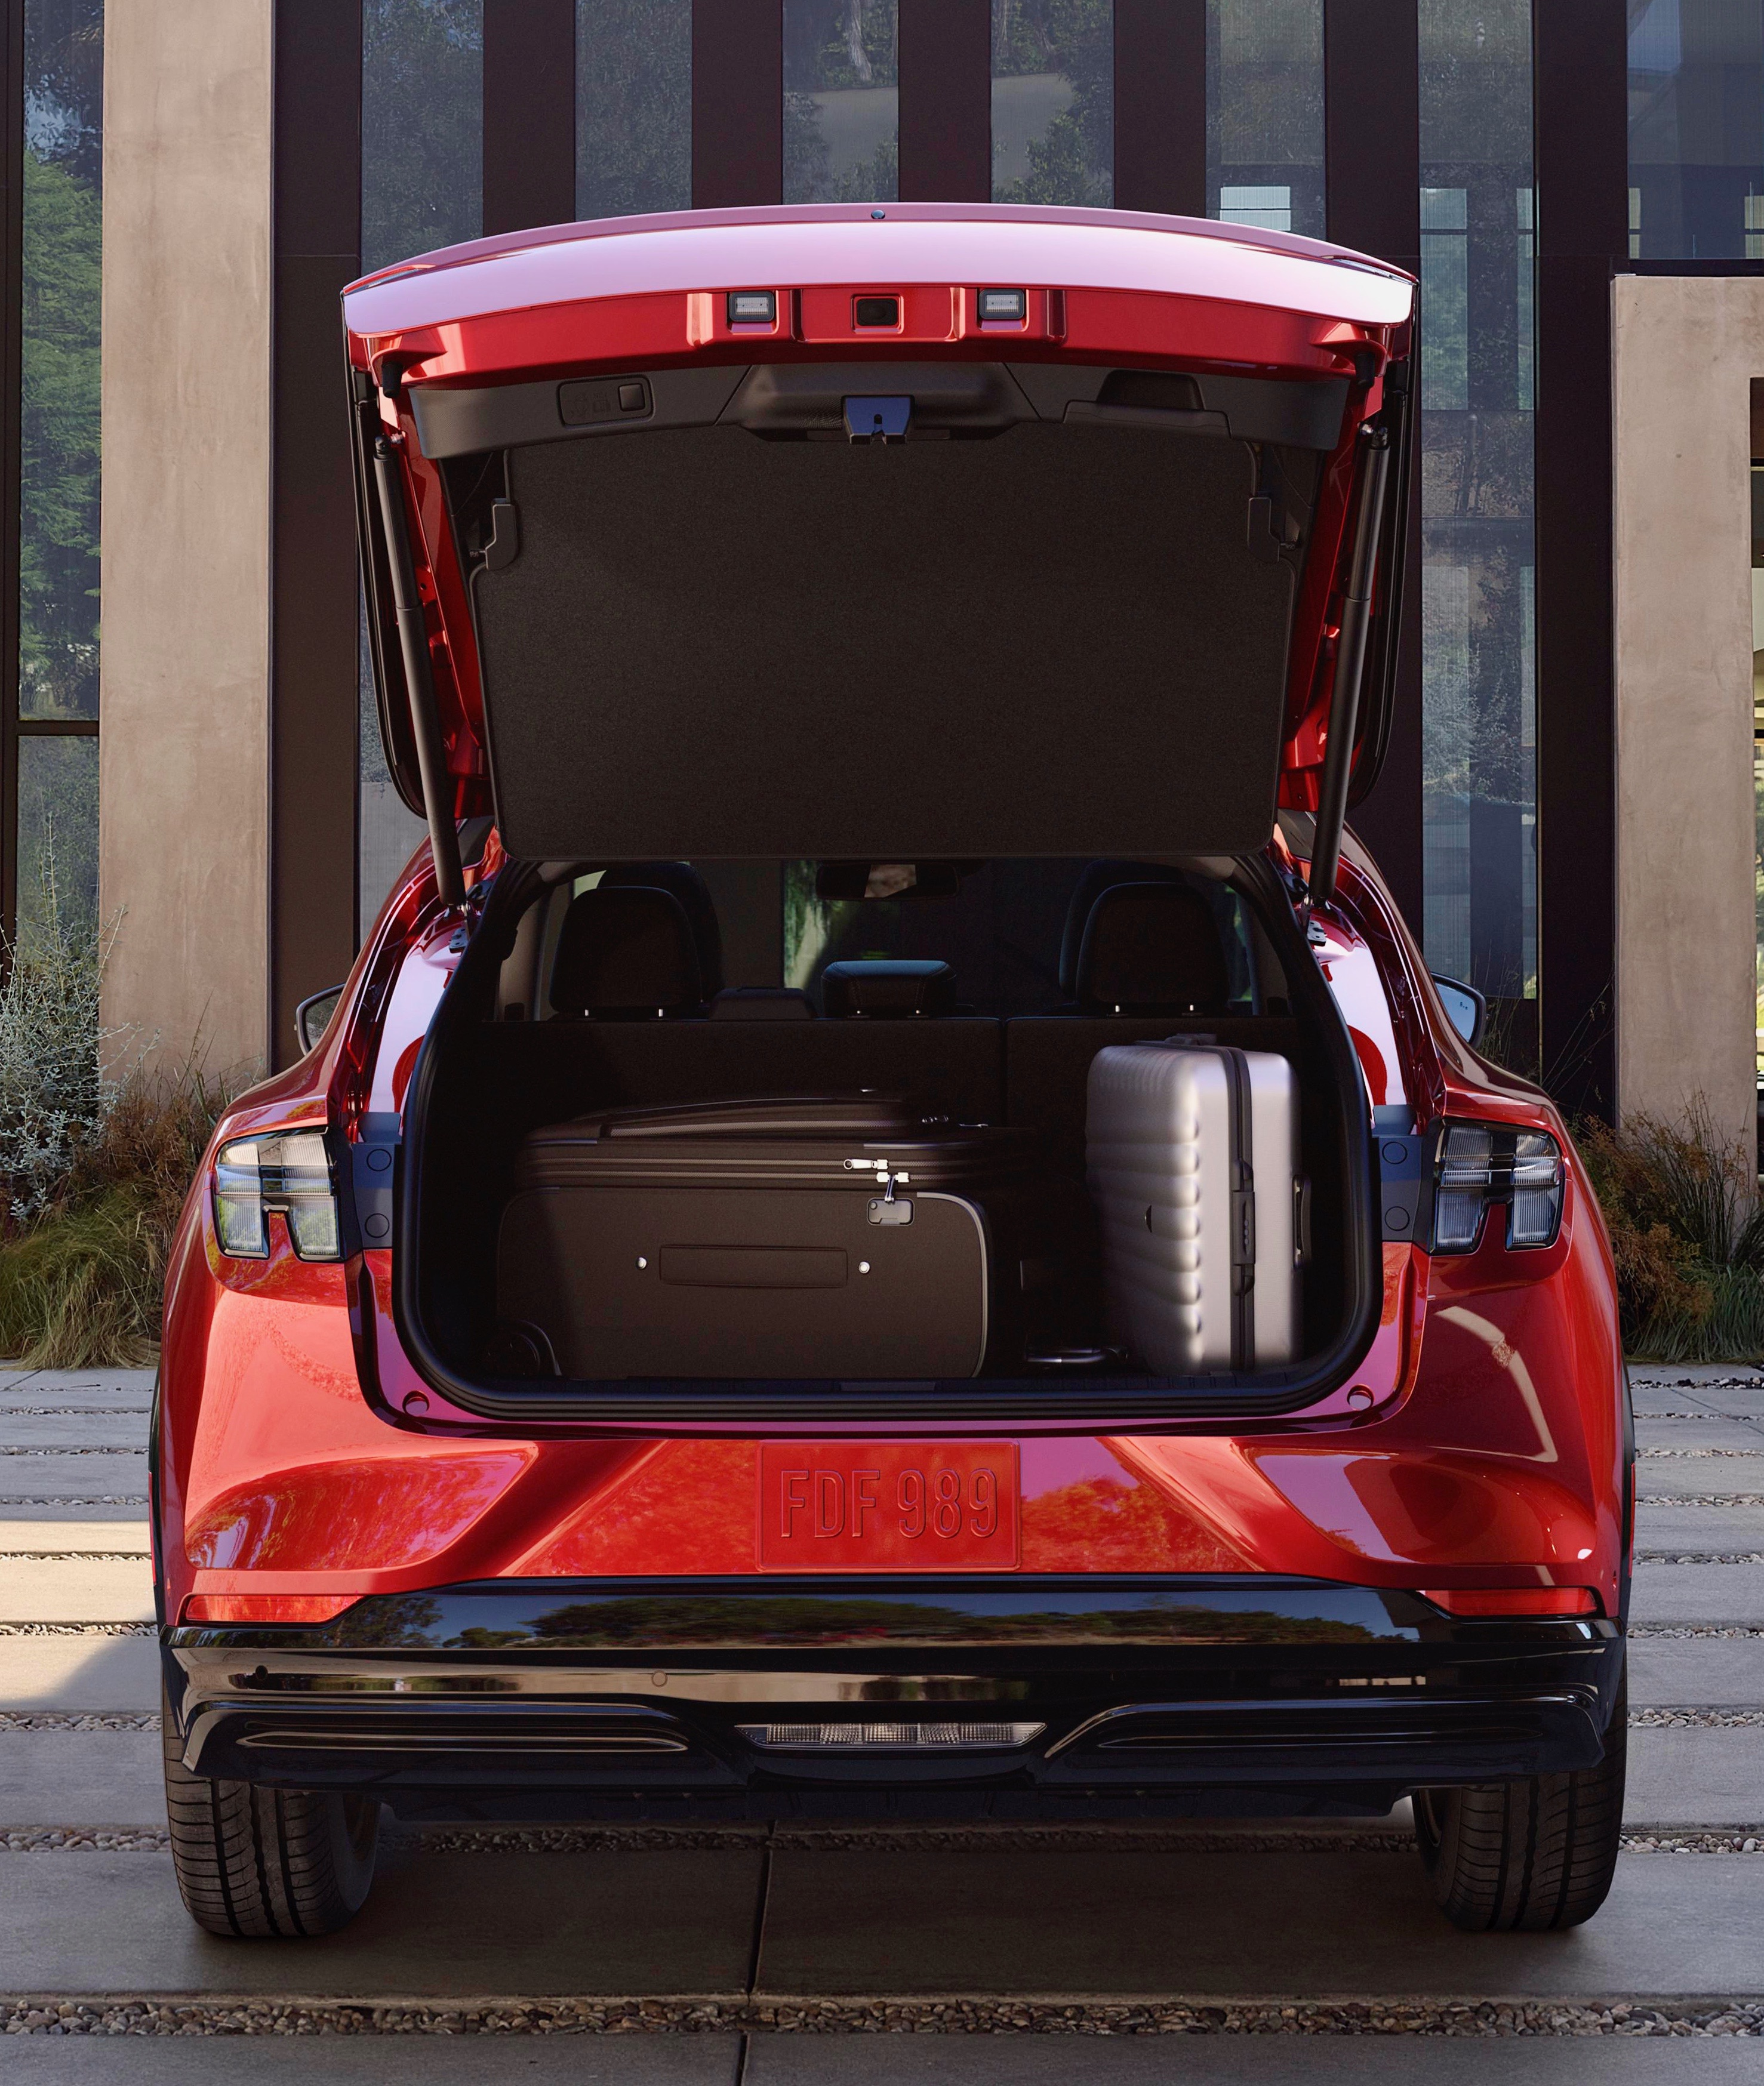 Mach-E, Ford unveils Mustang Mach-E electric sport utility vehicle, ClassicCars.com Journal